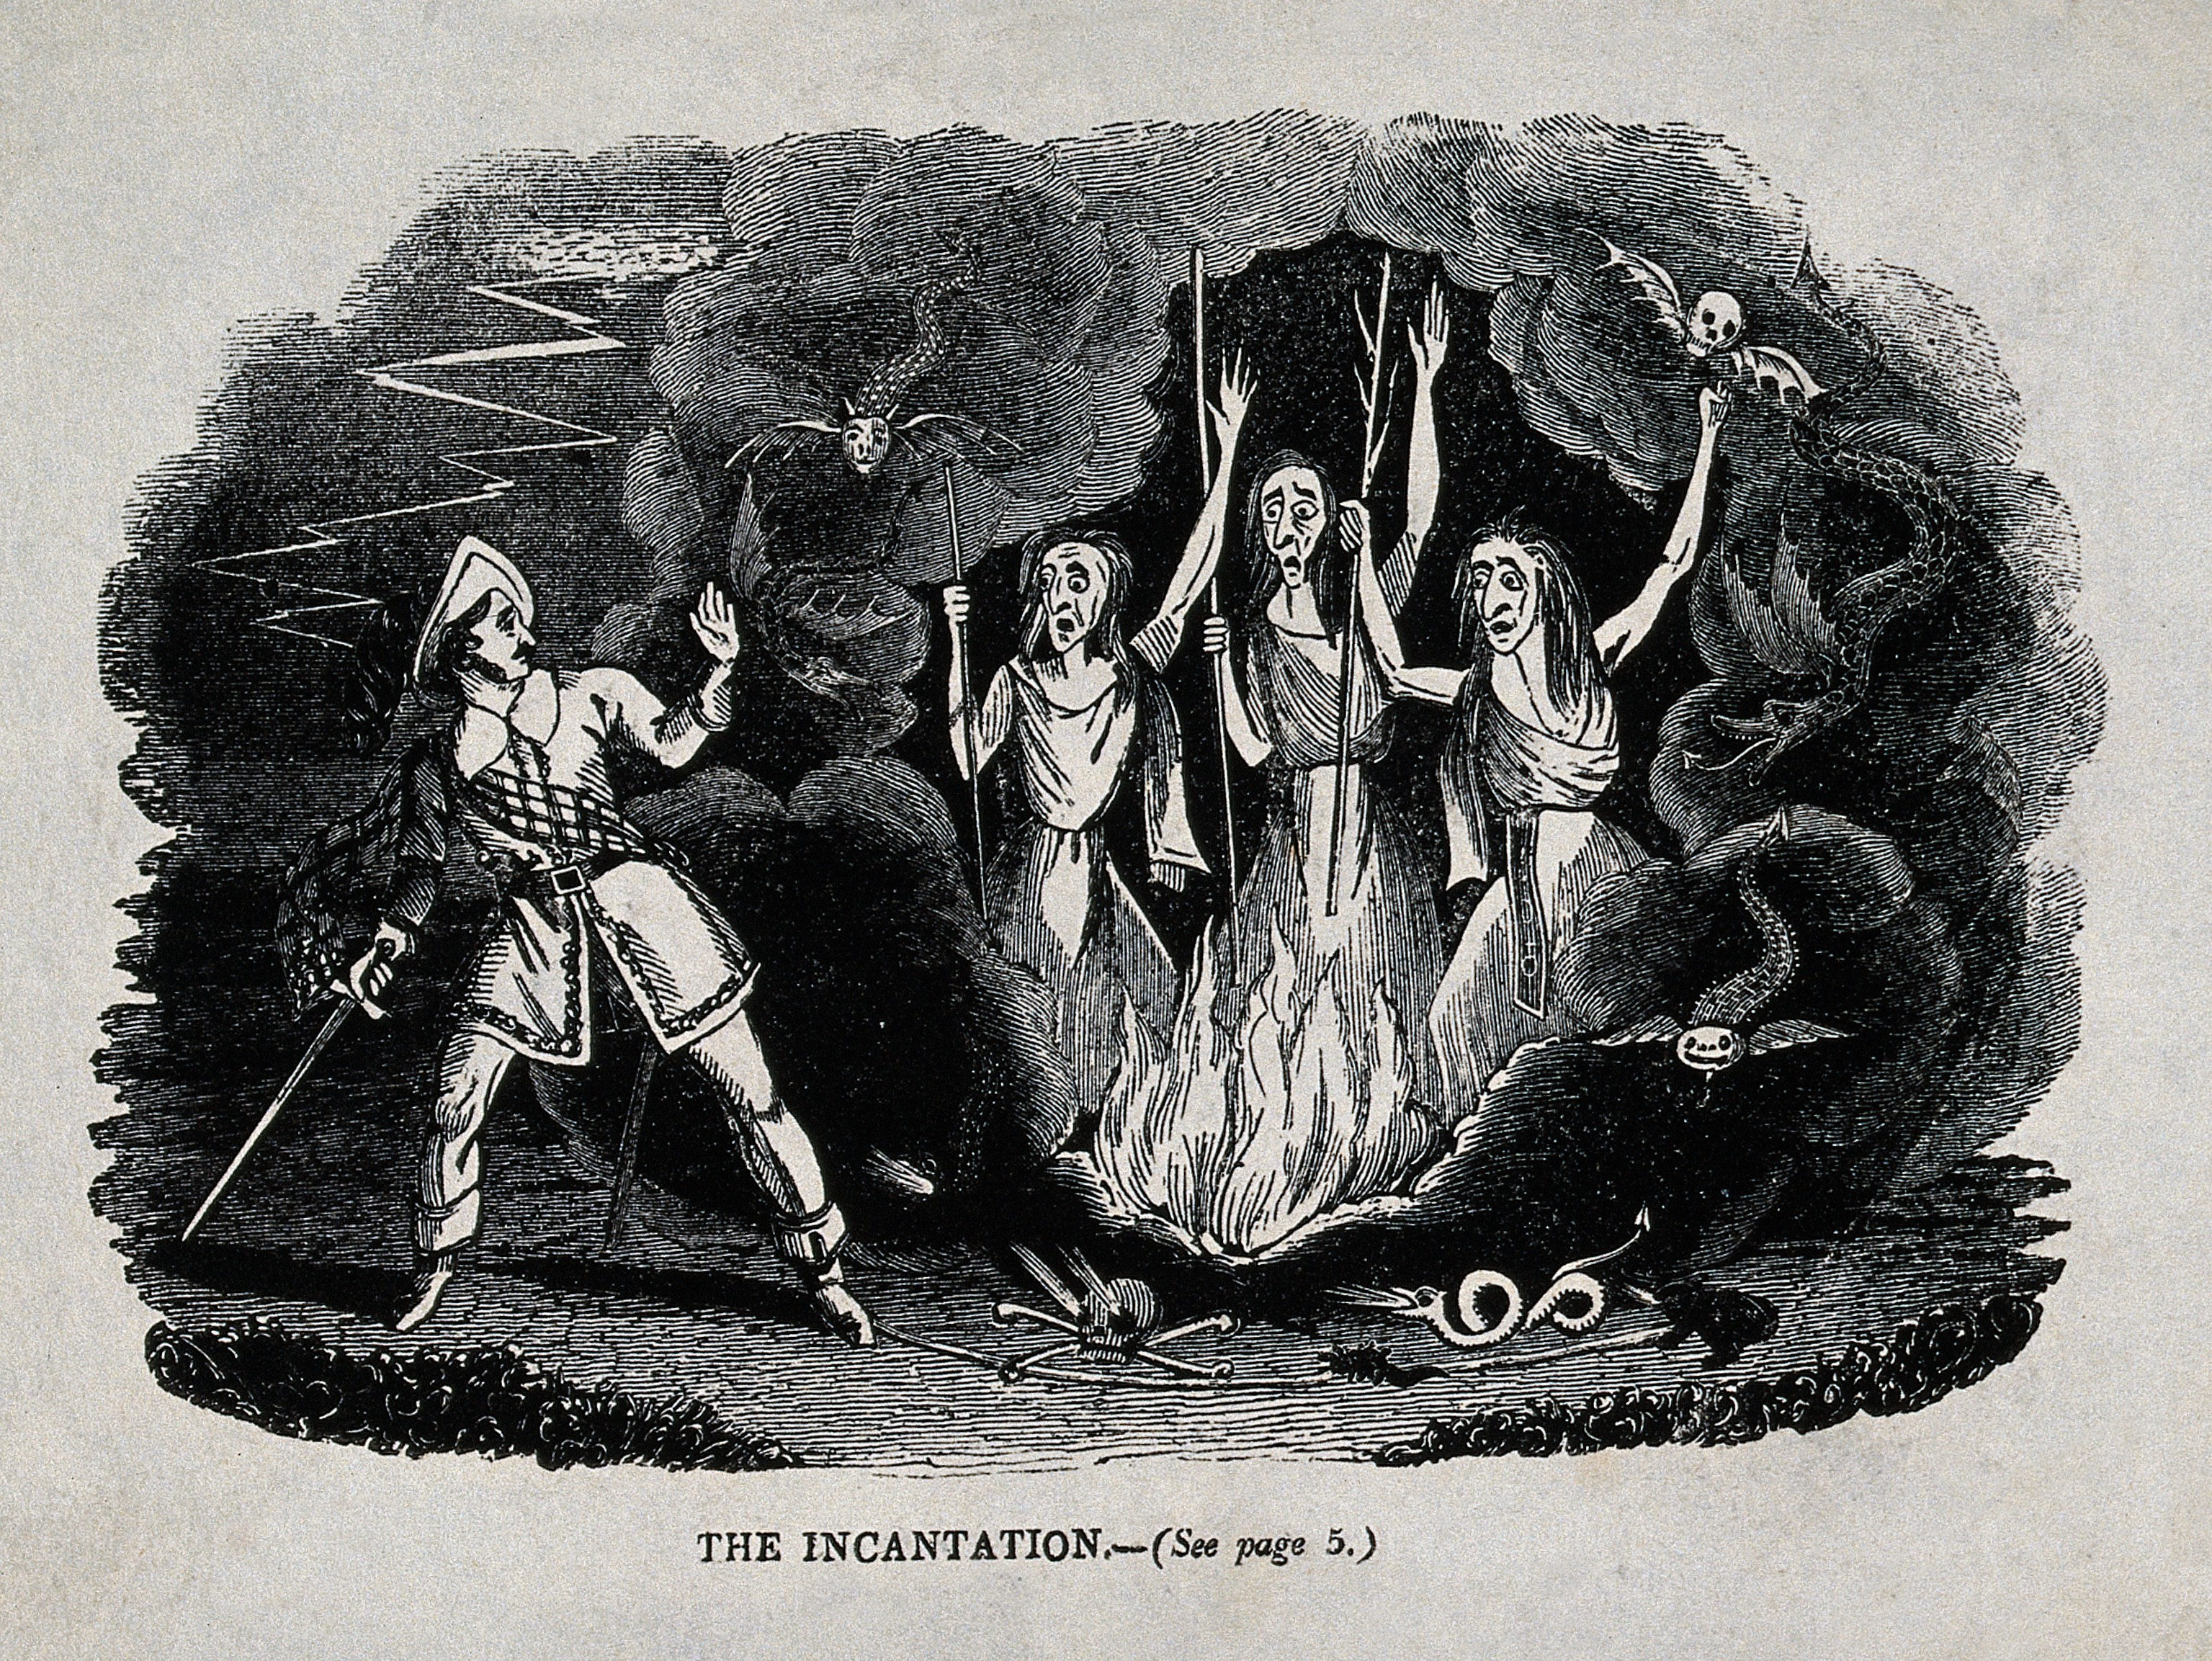 an analysis of witches in macbeth by william shakespeare Macbeth by william shakespeare william shakespeare's play the tragedy of macbeth , or macbeth , is one of his shorter tragedies, and was probably written between 1599-1606 shakespeare penned the play during the reign of james v1, who was a patron of the playwright's acting company.